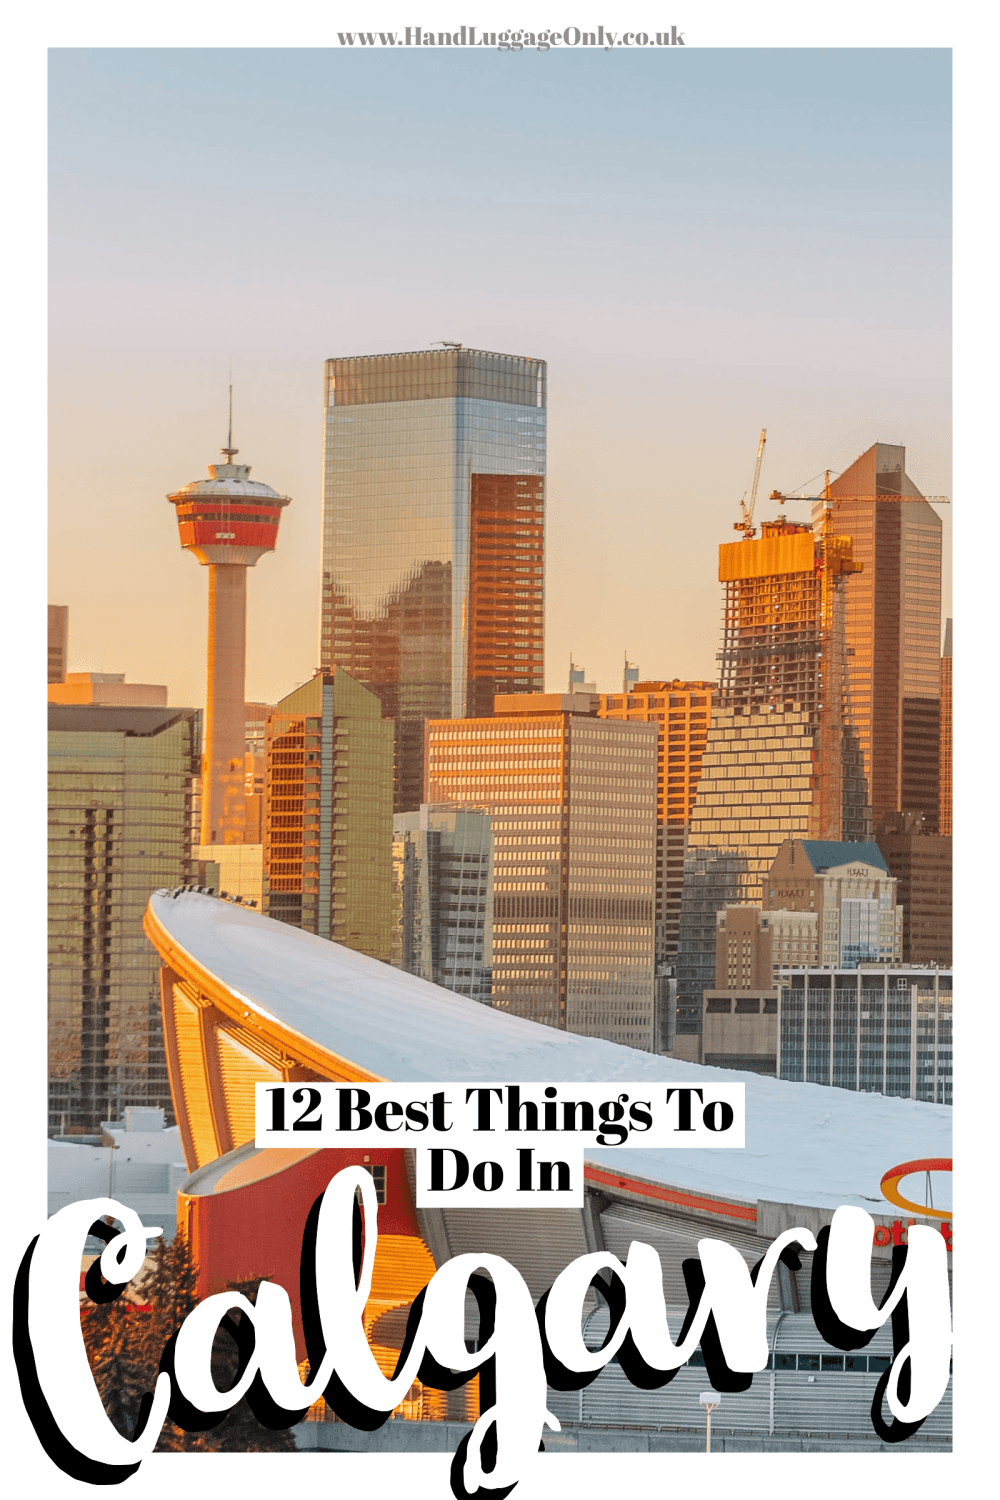 Best Things To Do In Calgary (1)